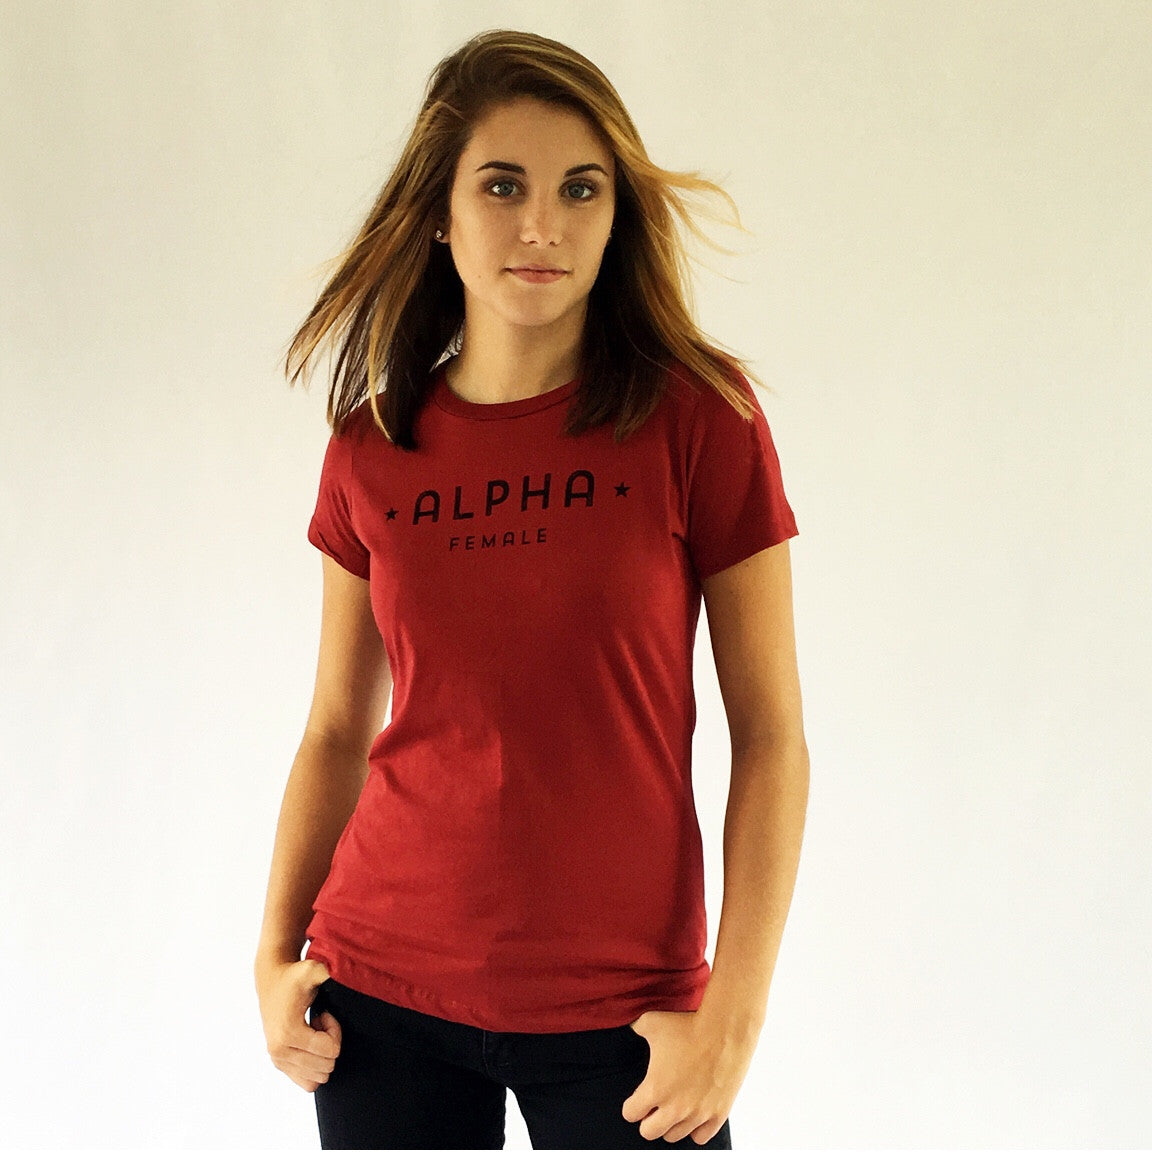 One Plane Jane Alpha Female Tee in Sangria. 100% Ringspun soft cotton. Inspired by pilots, aviators but perfect for all strong independent women.